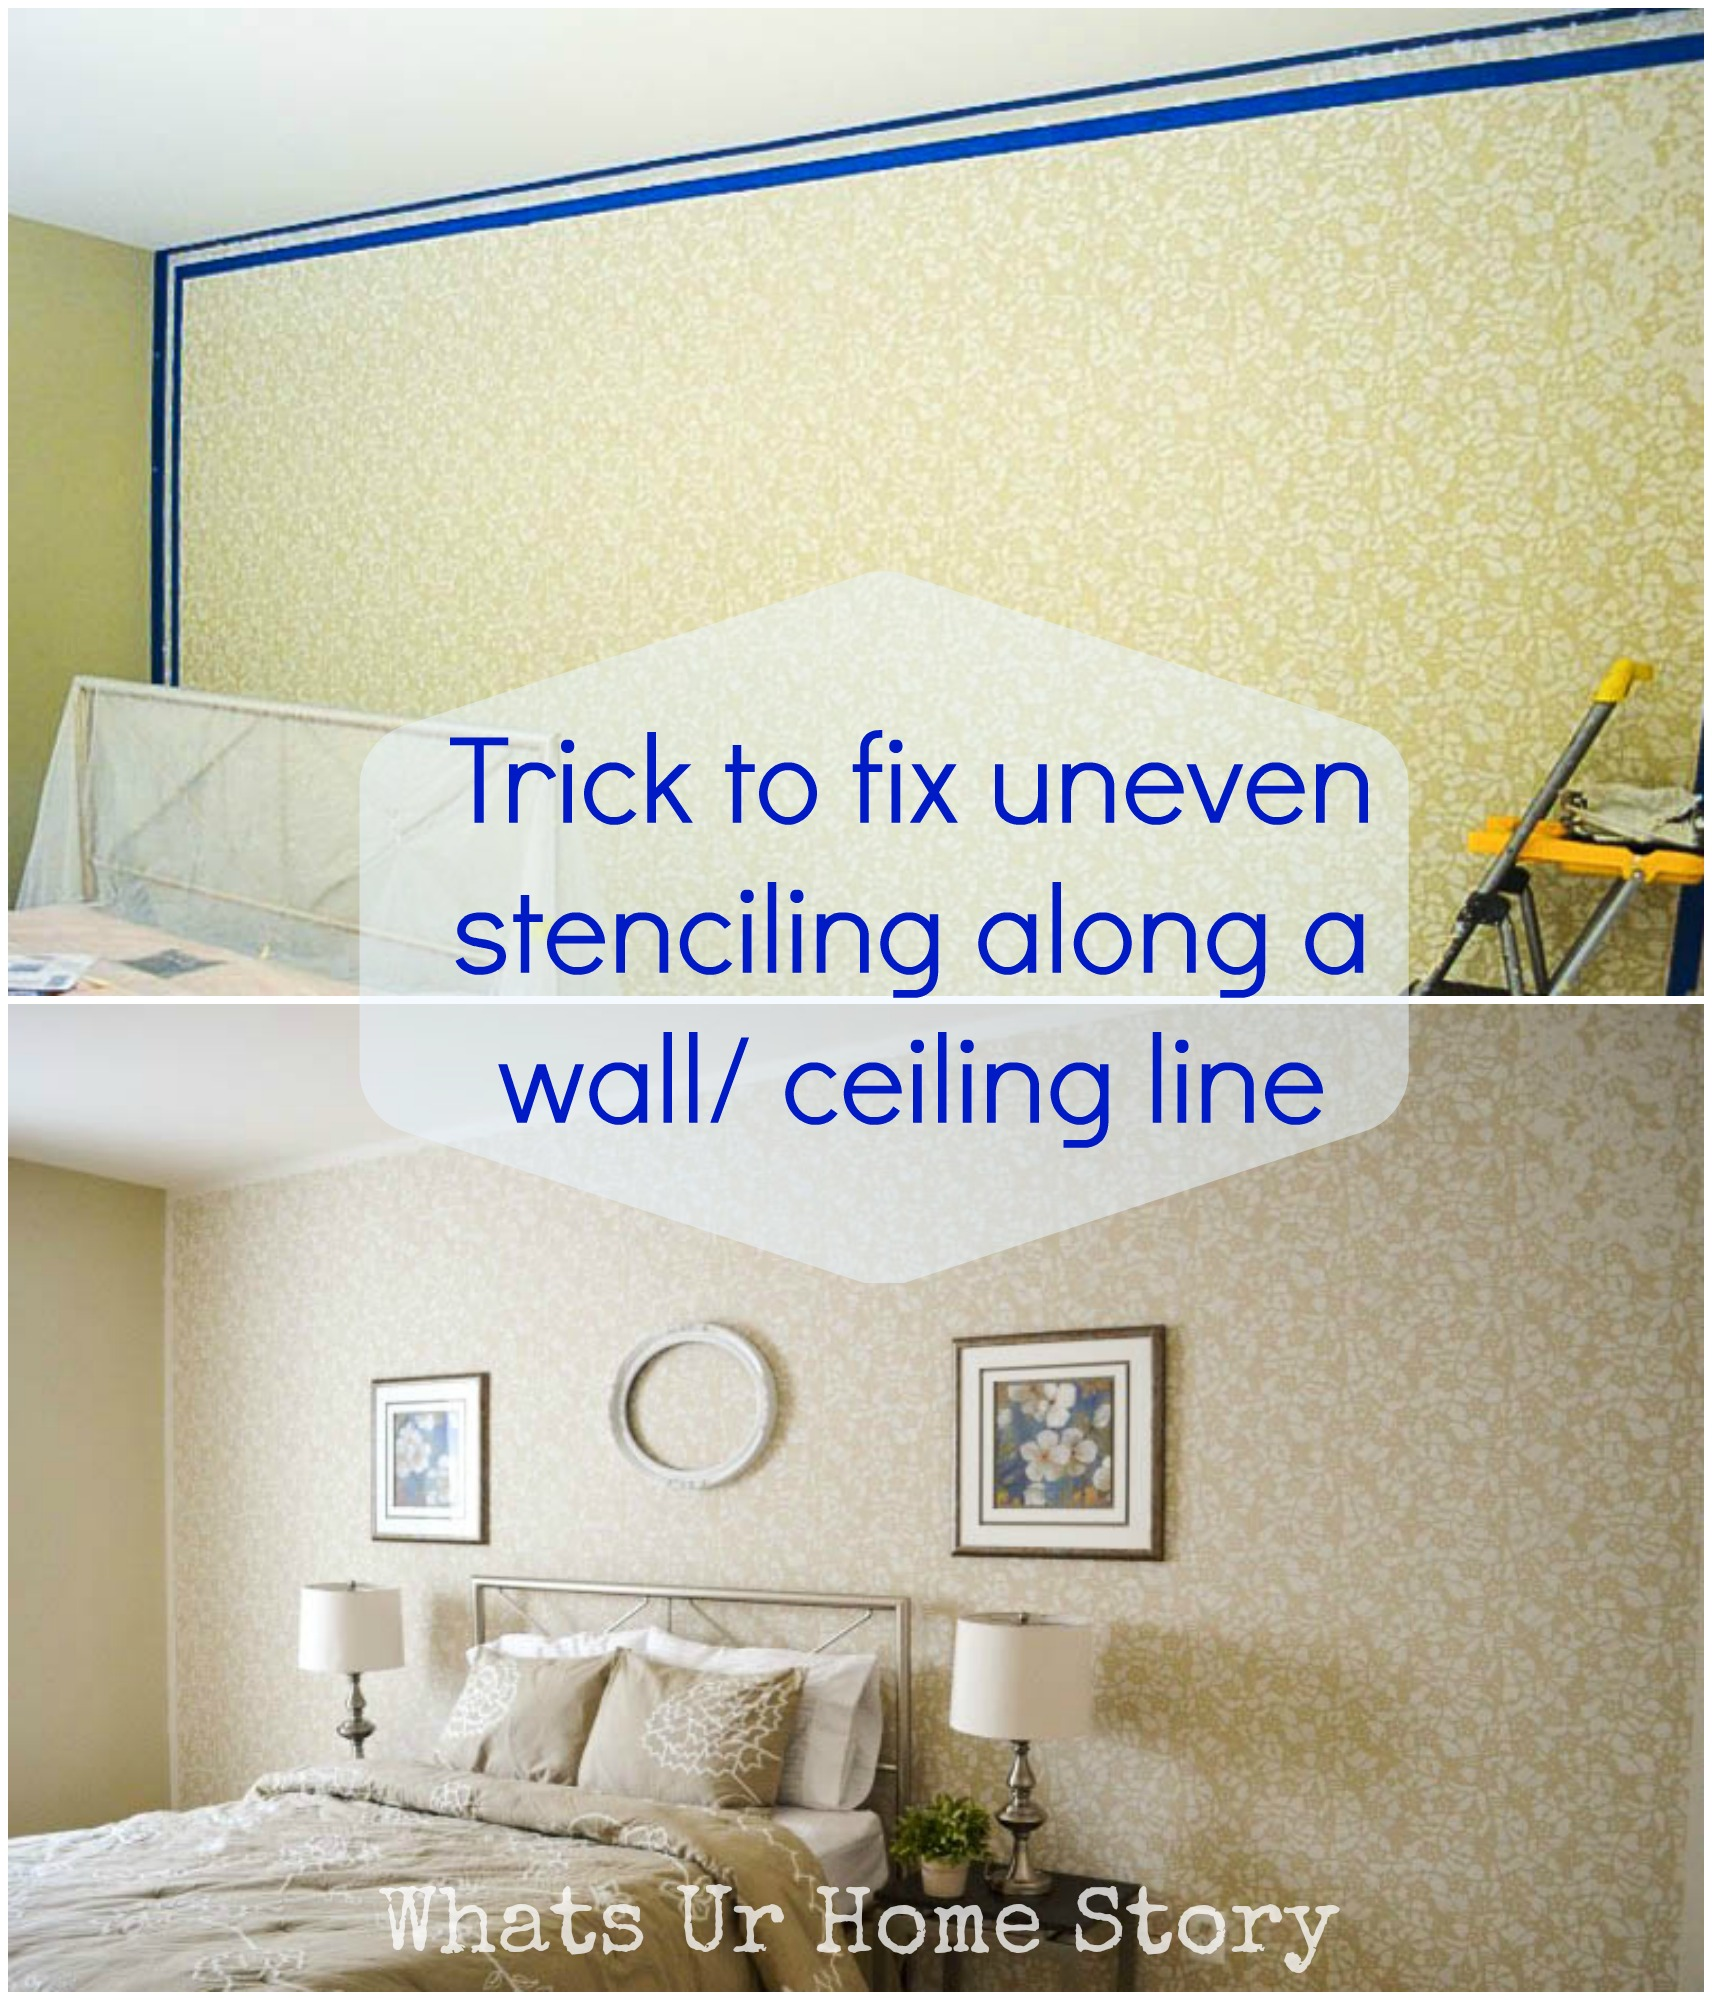 How to stencil a wall a trick to fix the uneven edges whats ur how to stencil a wall a trick to fix the uneven edges amipublicfo Gallery